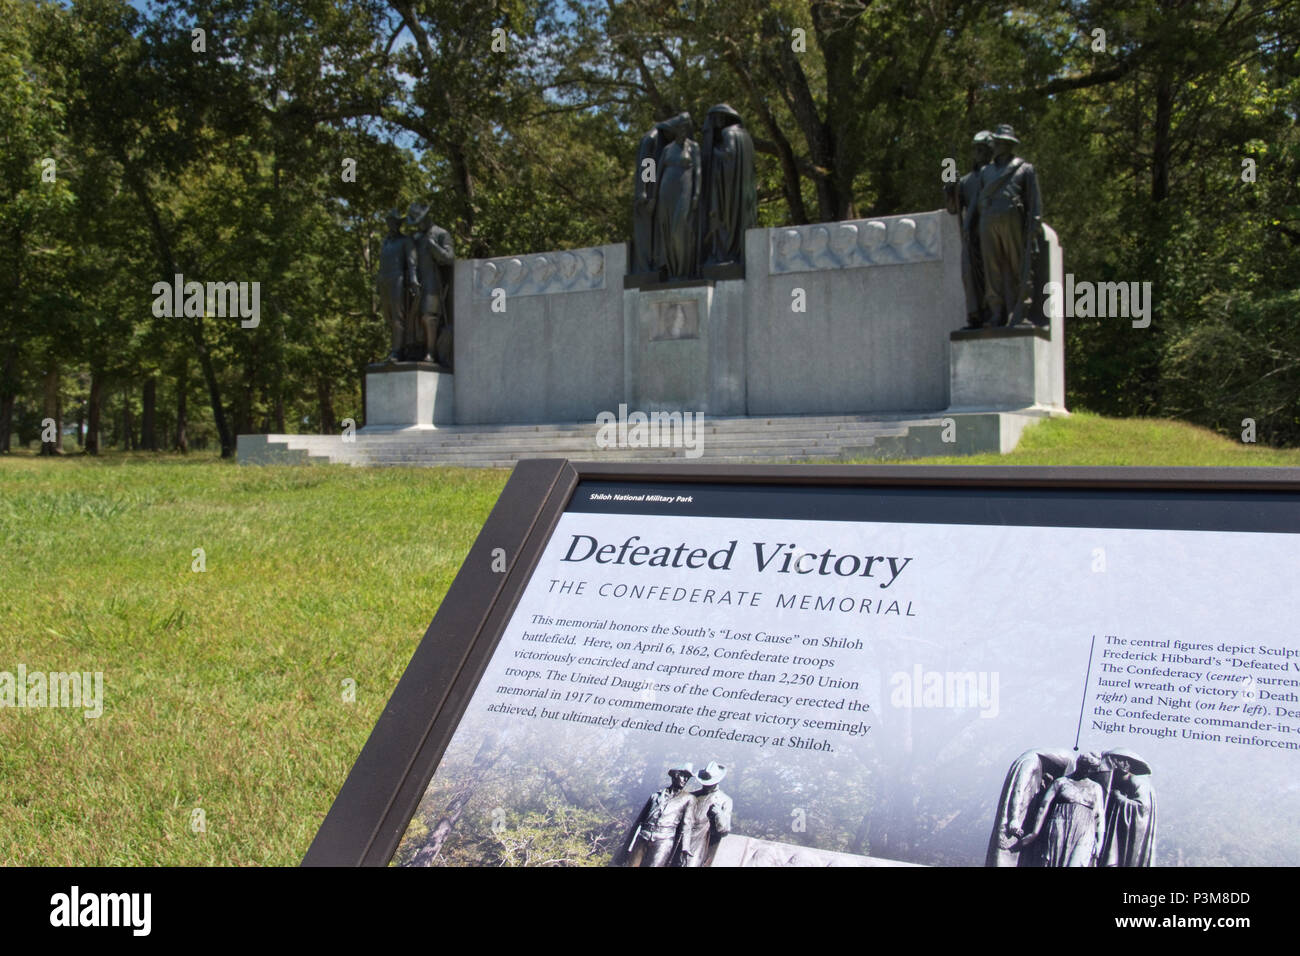 """The Confederate Memorial """"Defeated Victory"""" (erected 1917 / public domain) at Shiloh National Military Park, Shiloh, Tennessee. - Stock Image"""